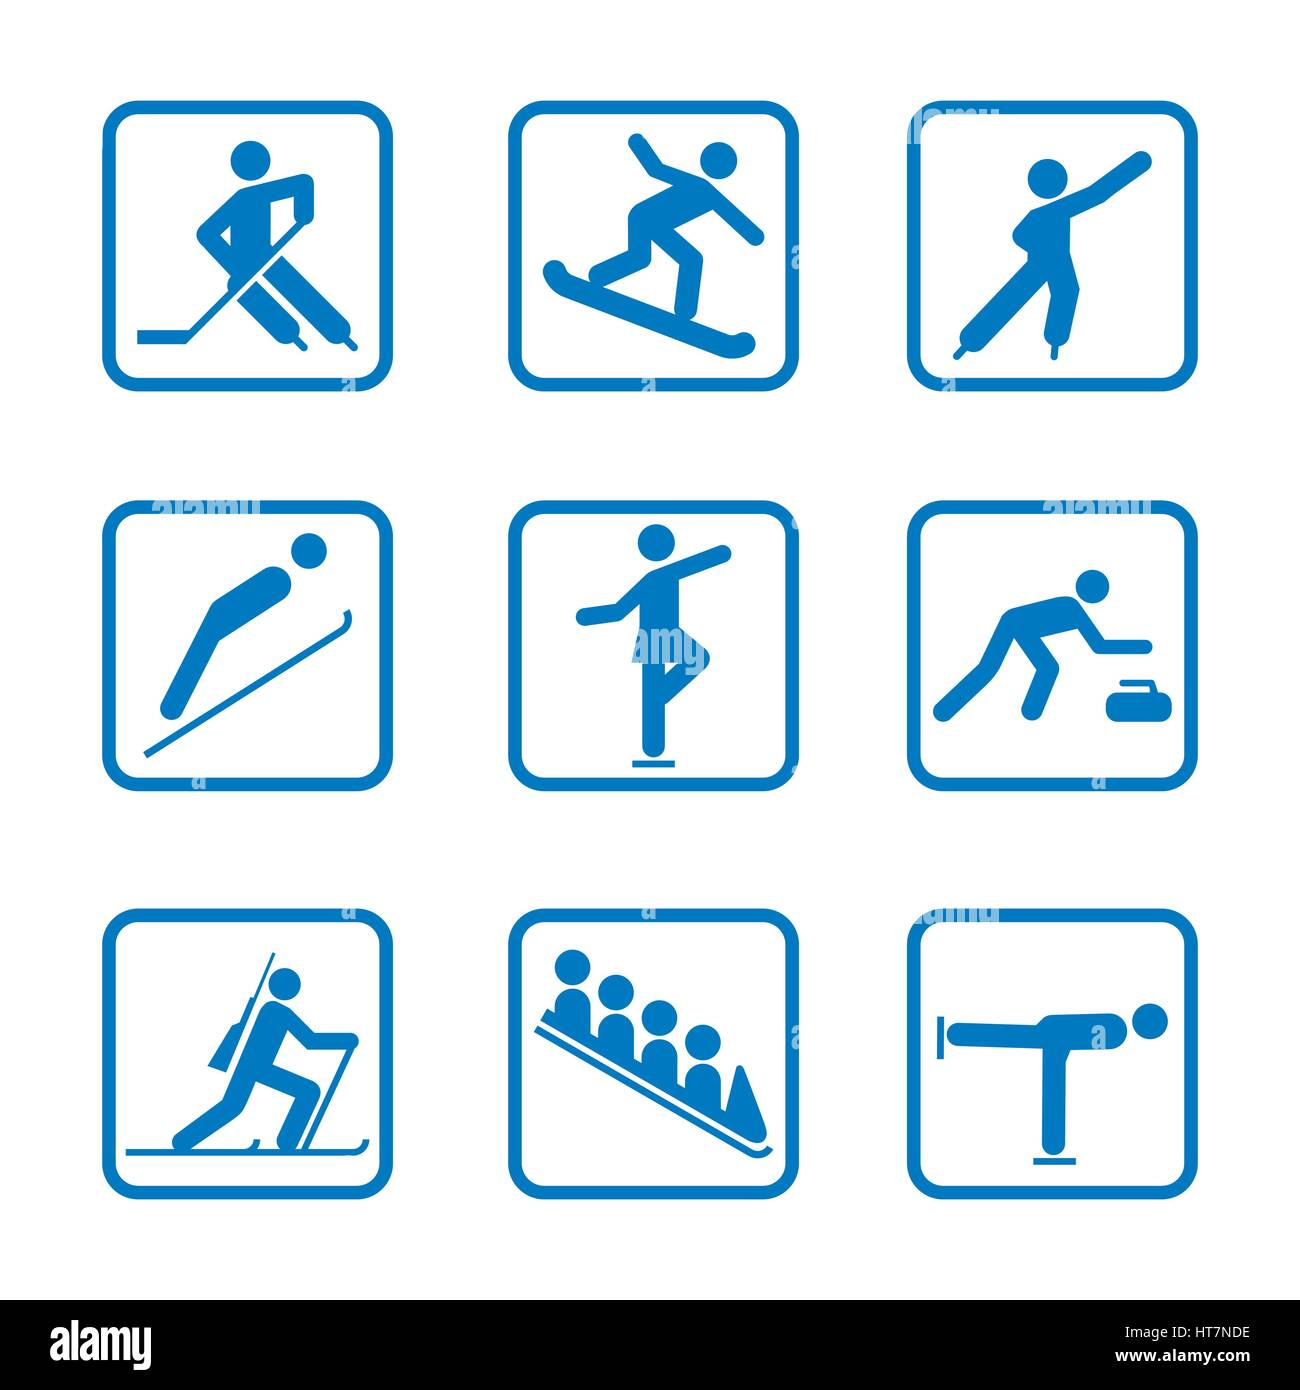 Winter sport icon Set. Winter Olympic club signs, fitness exercises - Stock Vector